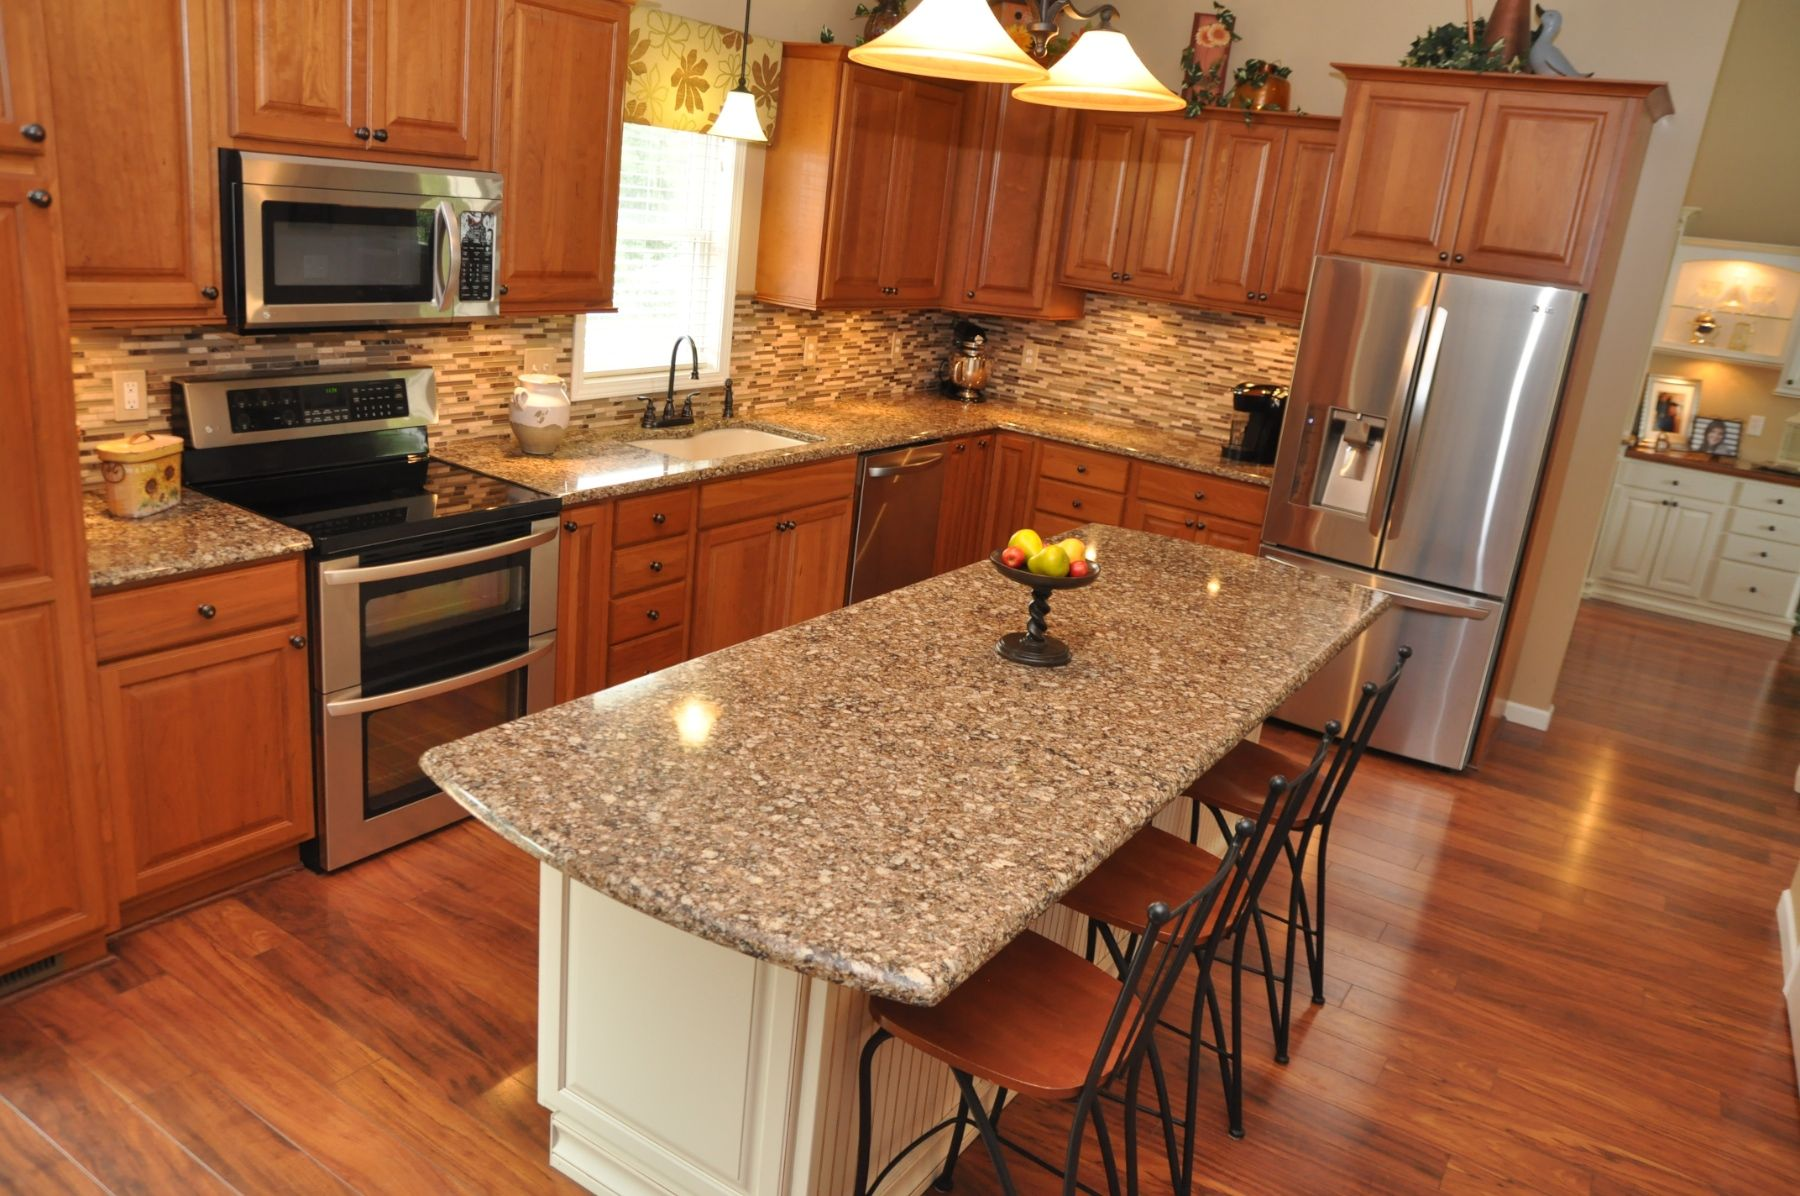 Kitchen Remodel Using Showplace Cherry Wood Cabinetry Cambria Quartz Count Cherry Wood Kitchen Cabinets Kitchen Cabinets And Countertops Cherry Wood Kitchens